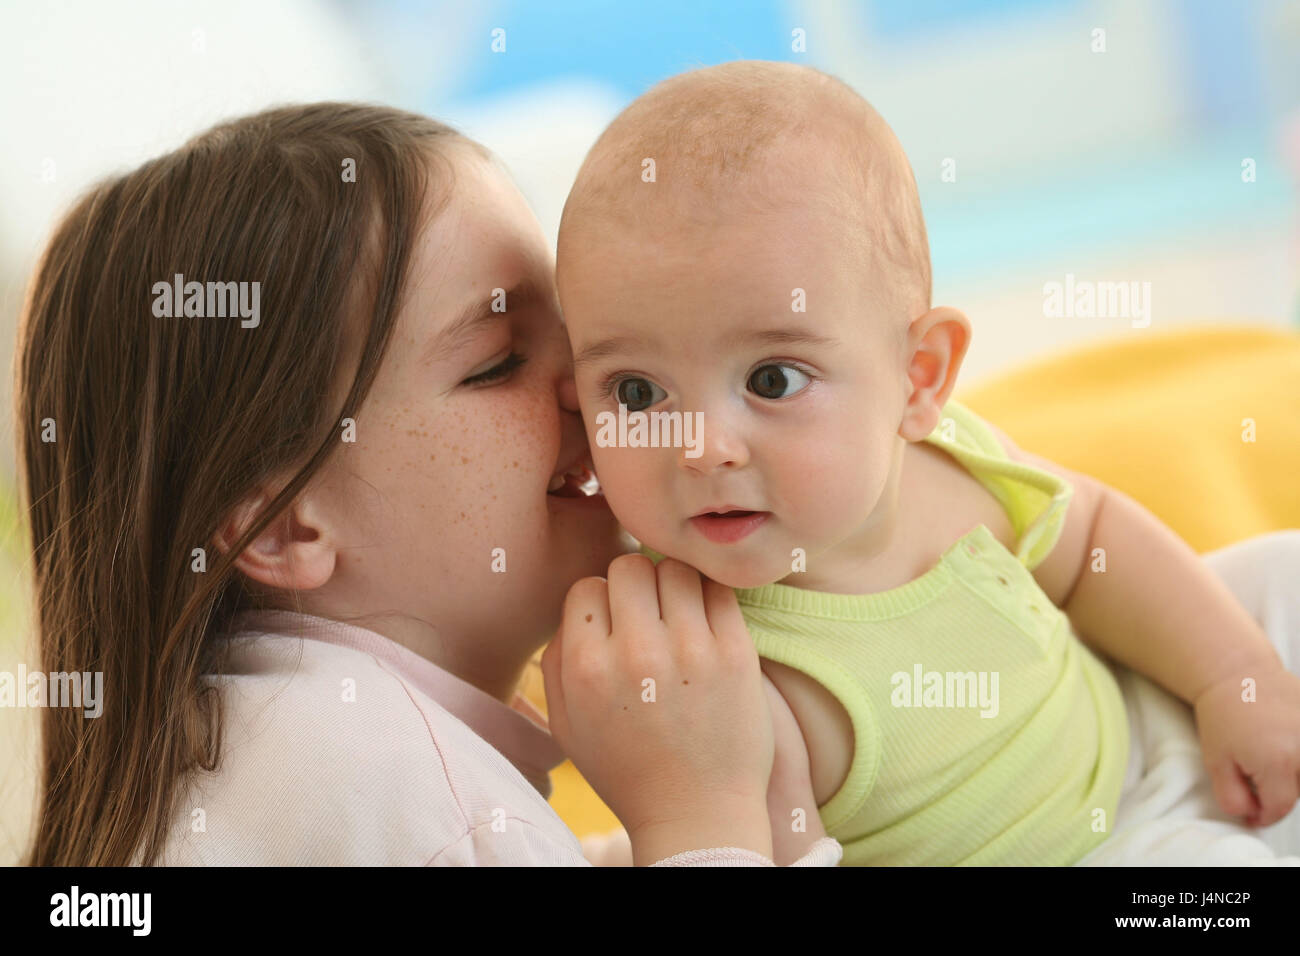 Baby, 5 months, child, 6 years, siblings, whisper, portrait, - Stock Image